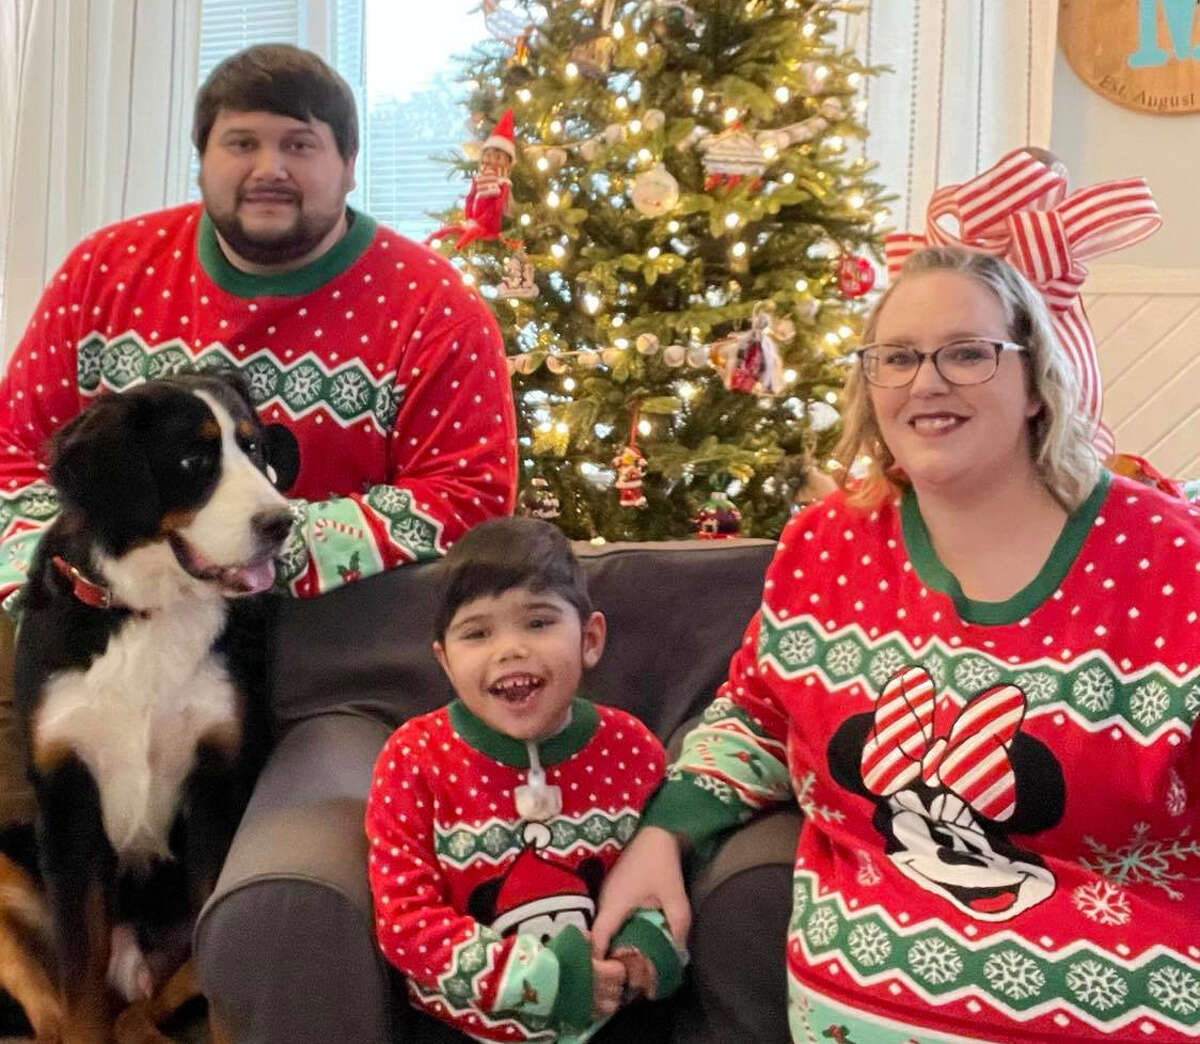 (From left) Andrew, Anderson and Alicia Moreno share big smiles in front of their Christmas tree at their Big Rapids home during the holidays this year. The Moreno family are currently in search of a live kidney donor for 5-year-old Anderson.